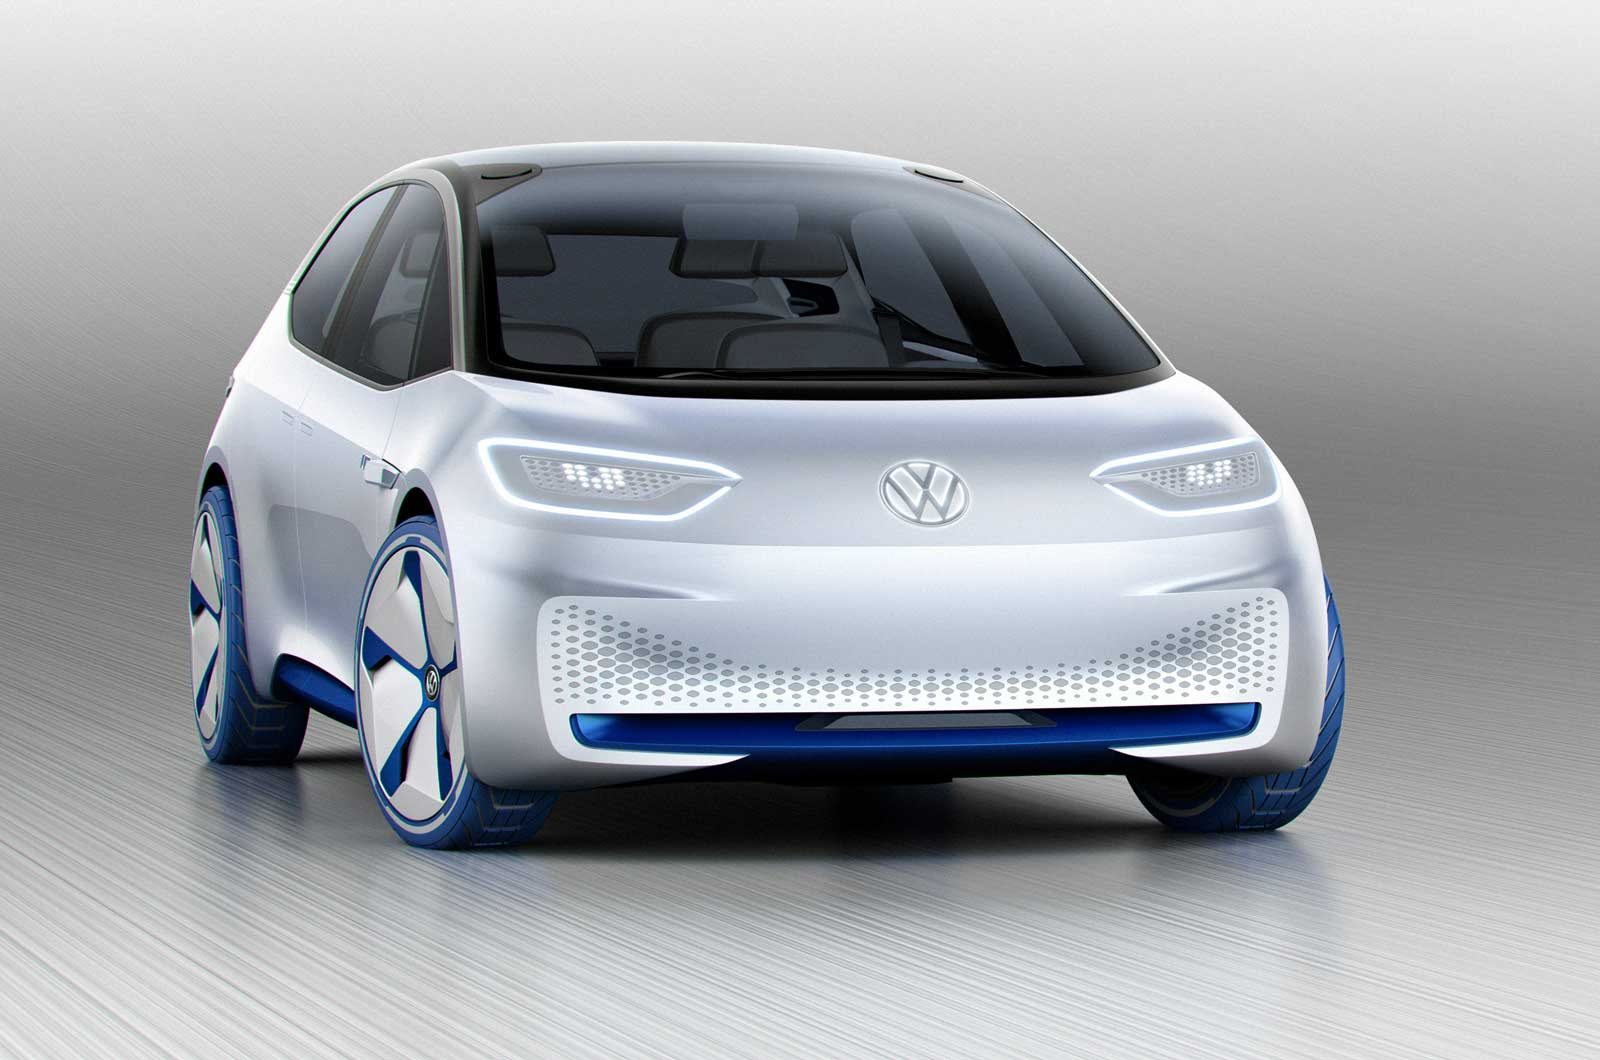 Volkswagen Id Hatch To Stay True Concept Says Design Boss Autocar The Bmw I1 Is An Electric Singleseater Trikecar By Designer First Of Its Dedicated Cars Computer Simulations Suggest Production Version Set Possess A 0 62mph Time Less Than Eight